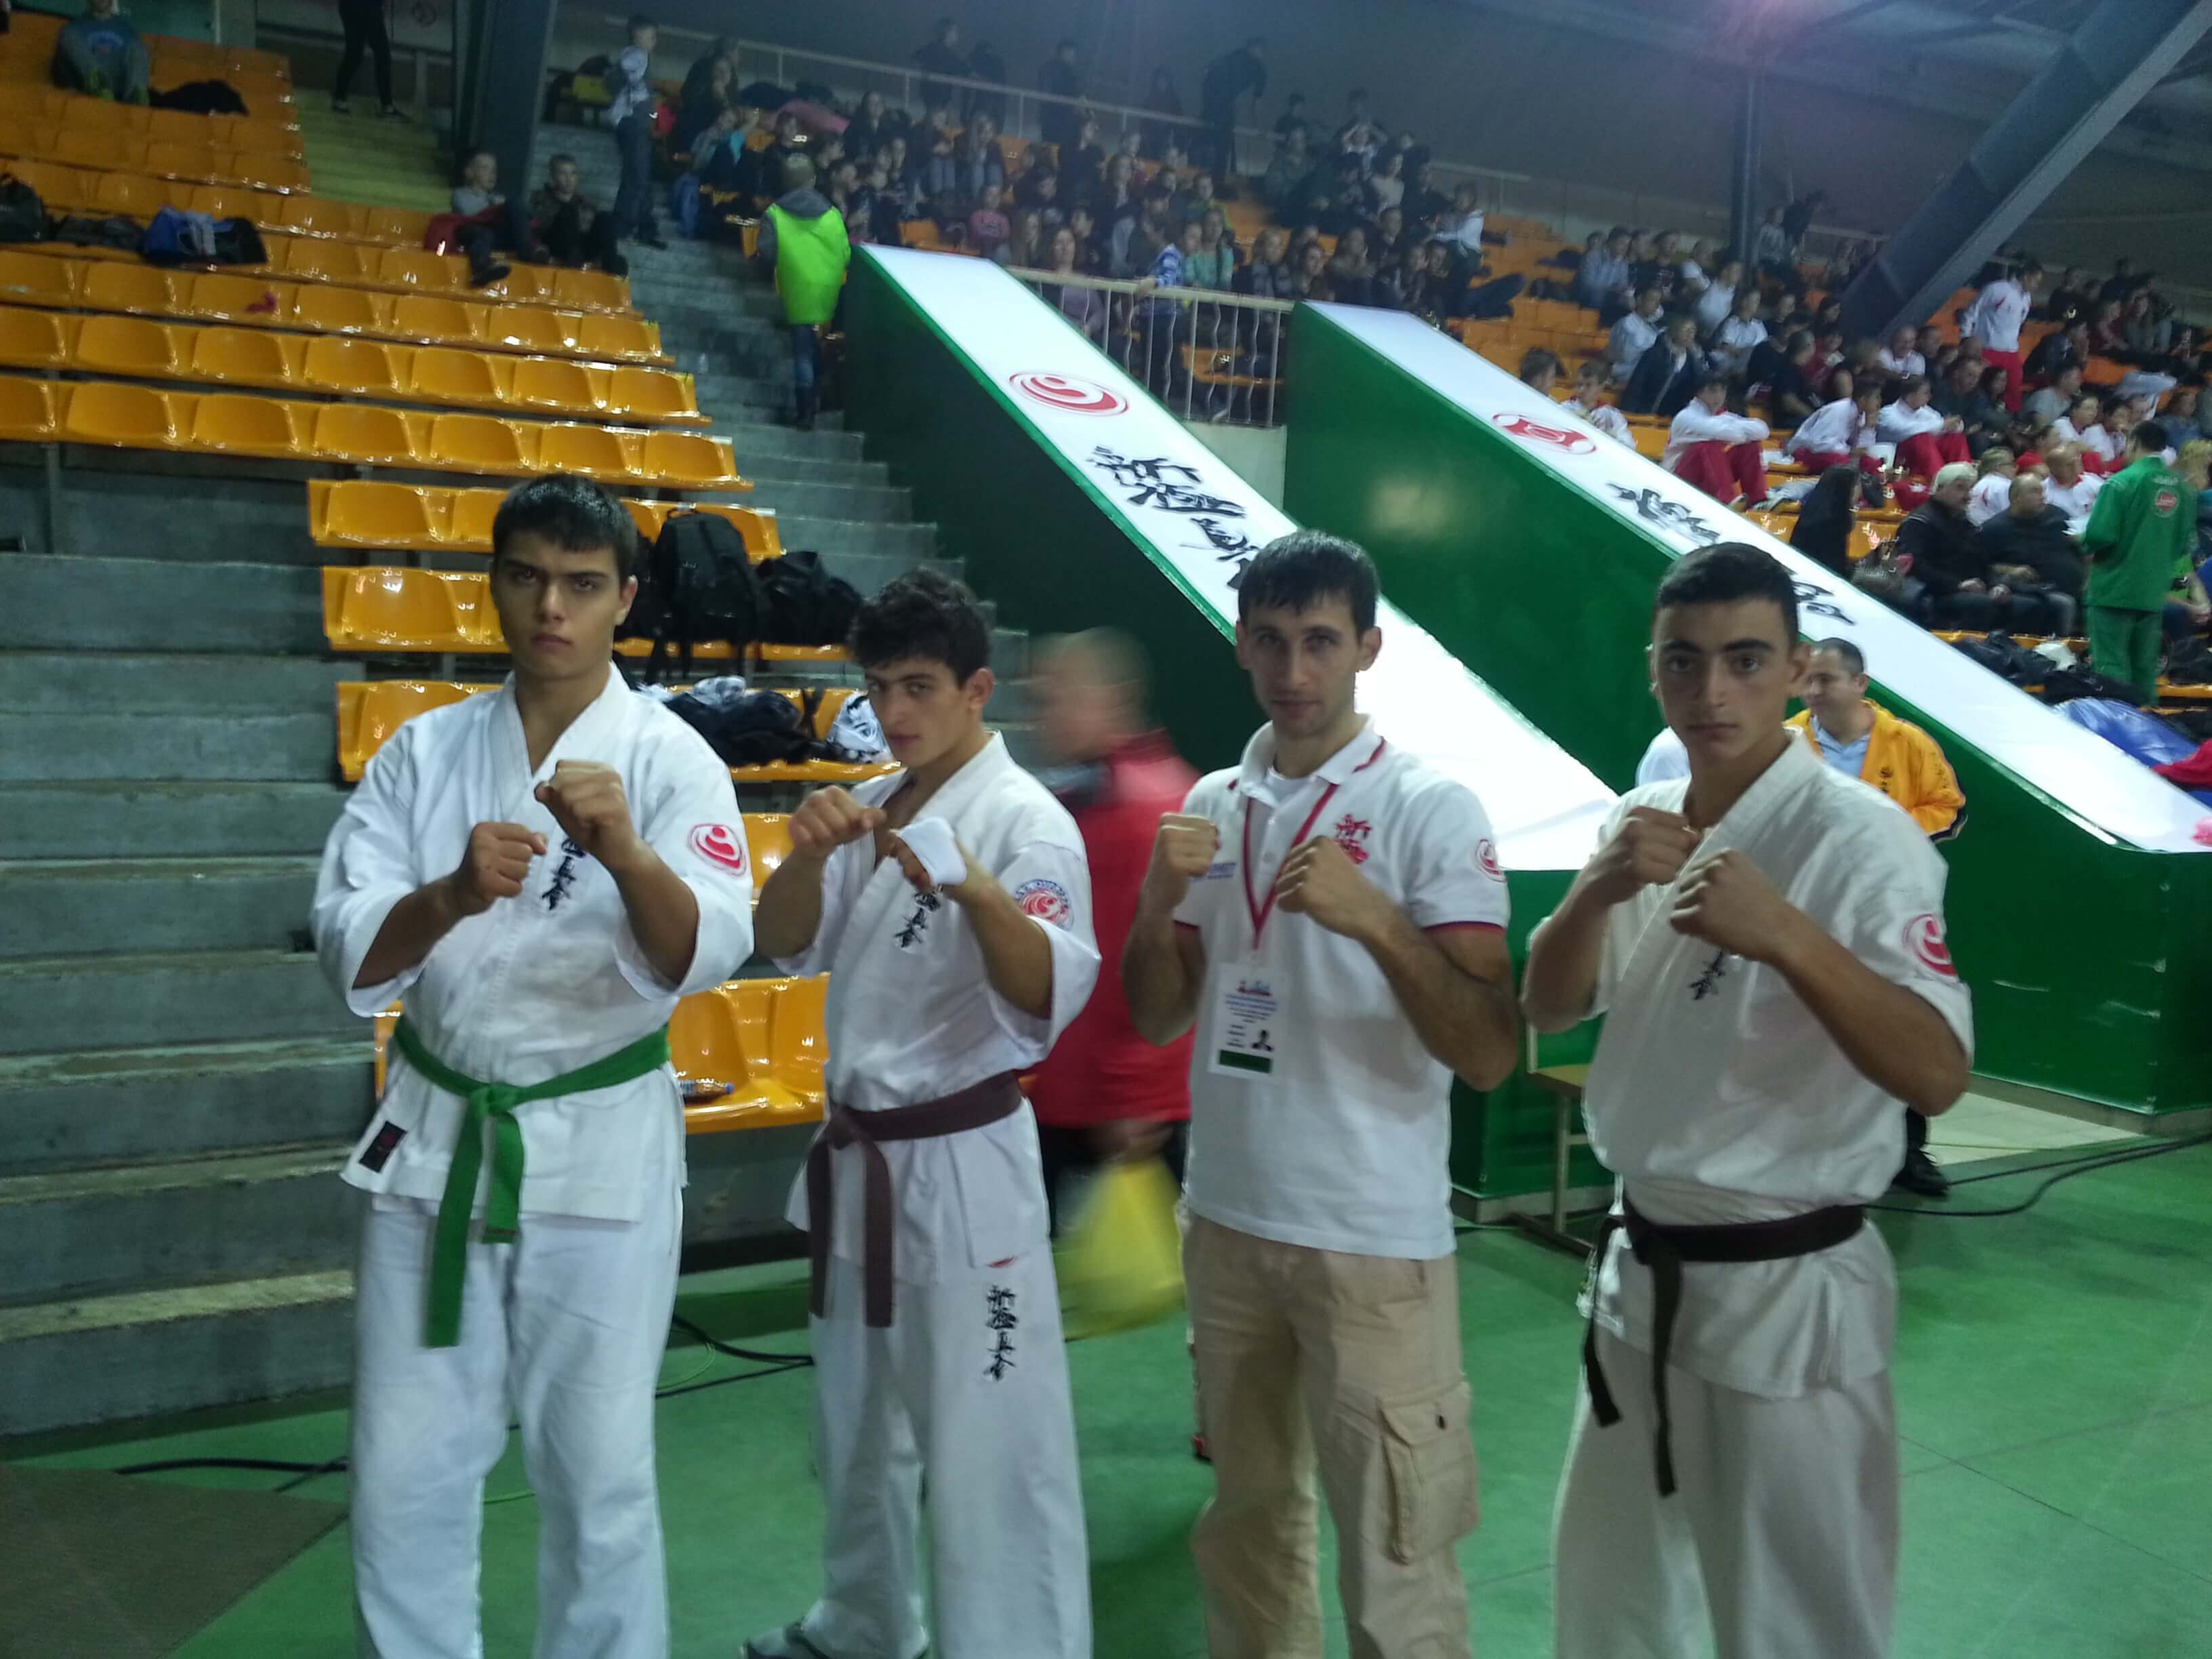 Federation of Shinkyokushin Karate of Armenia - U22 in Lithuania